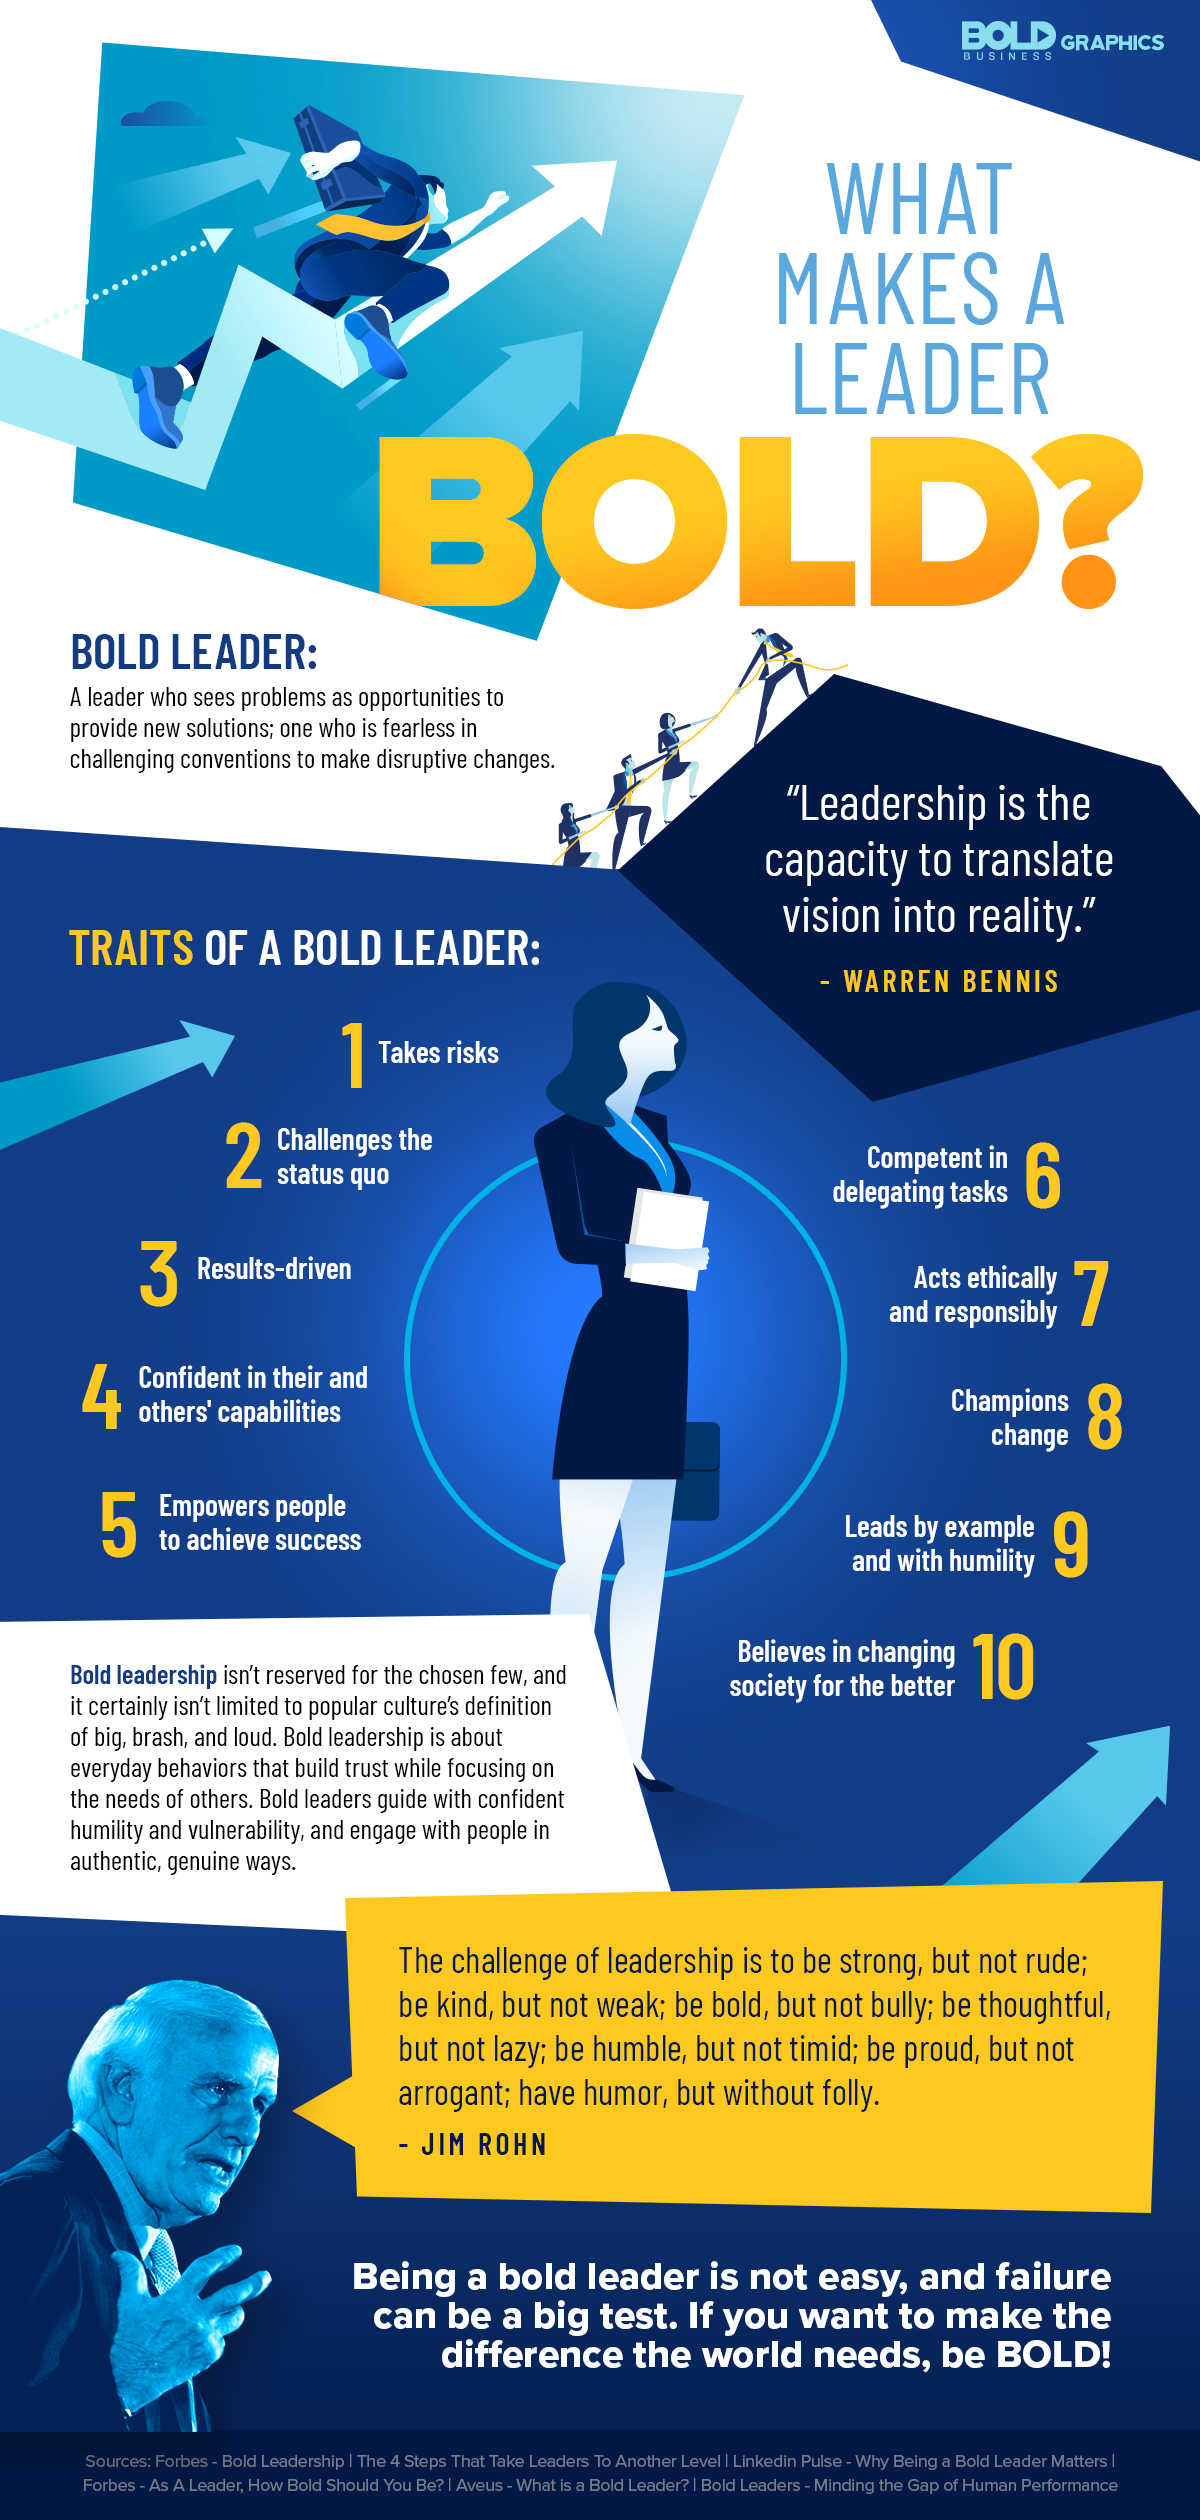 What Does It Take to Be a Bold Leader and What is Bold